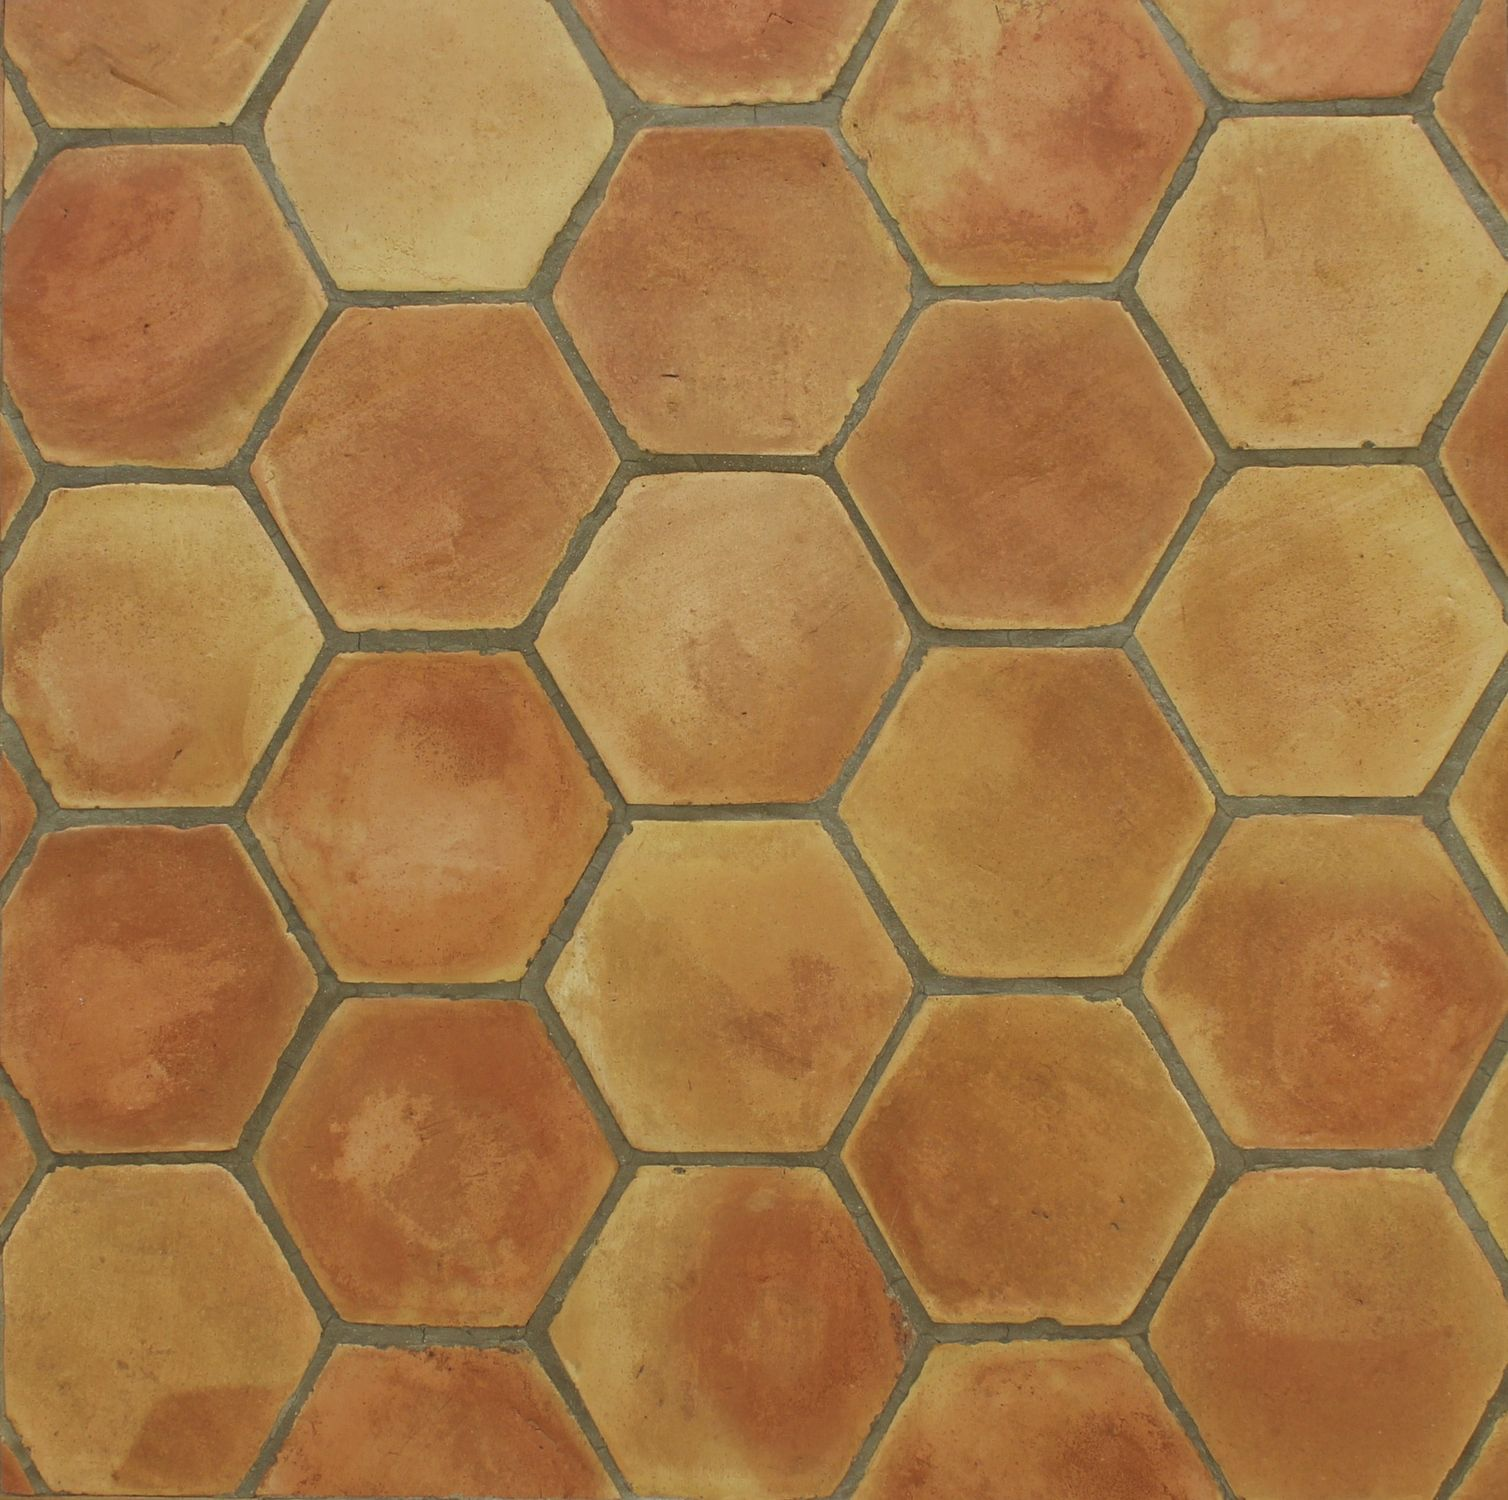 Indoor tile floor terracotta matte hexagonal ceramicas indoor tile floor terracotta matte hexagonal dailygadgetfo Choice Image